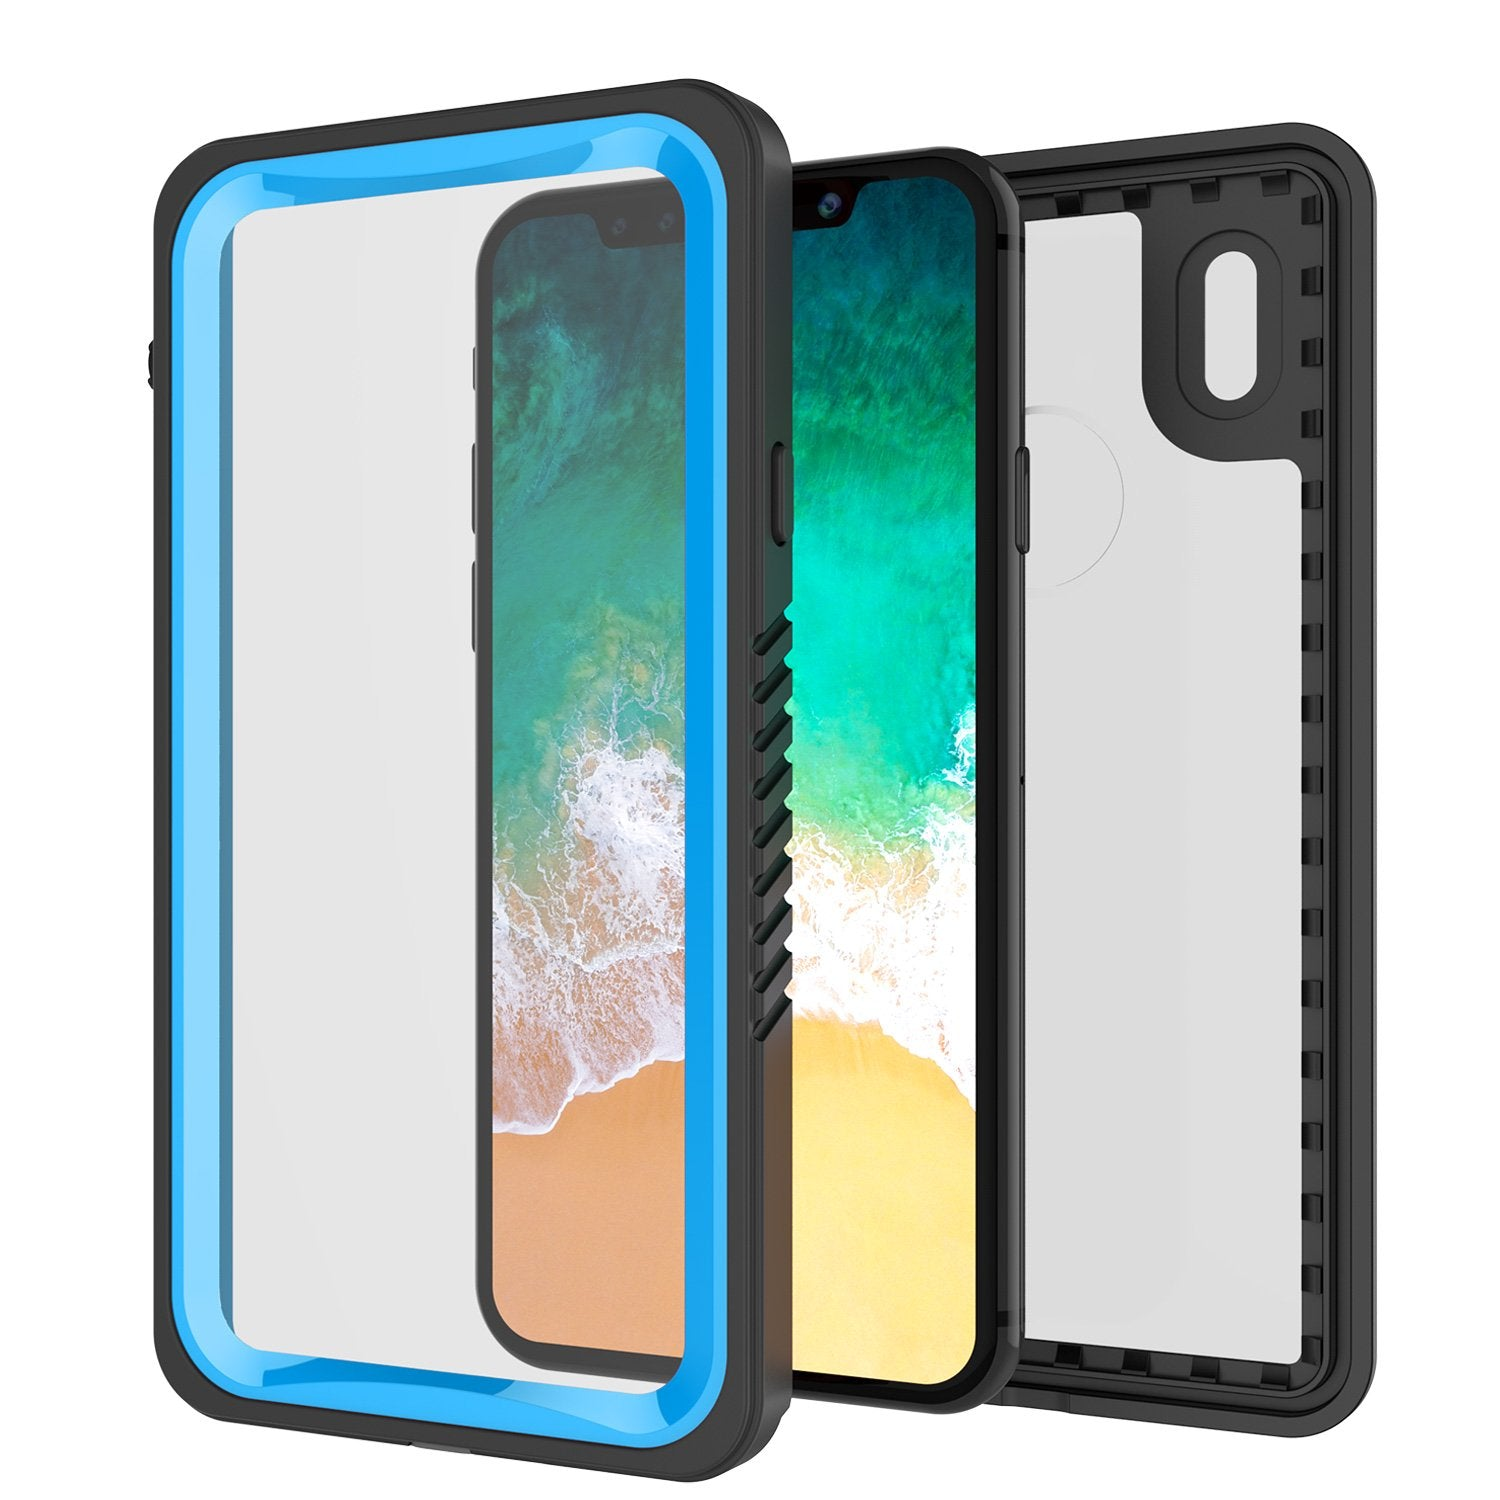 iPhone X Case, Punkcase [Extreme Series] [Slim Fit] [IP68 Certified] [Light Blue] - PunkCase NZ